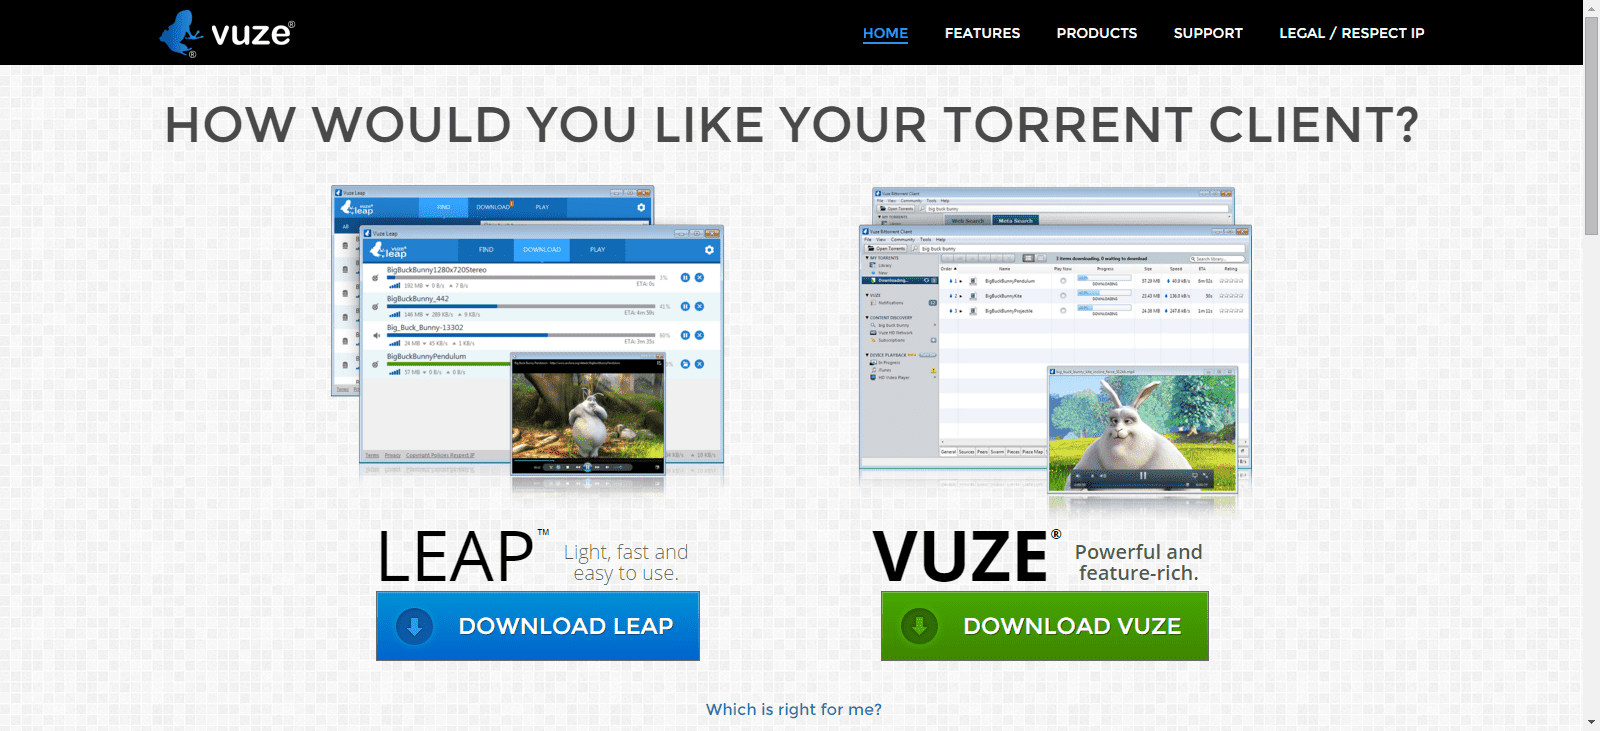 free legal bittorrent and file sharing resources